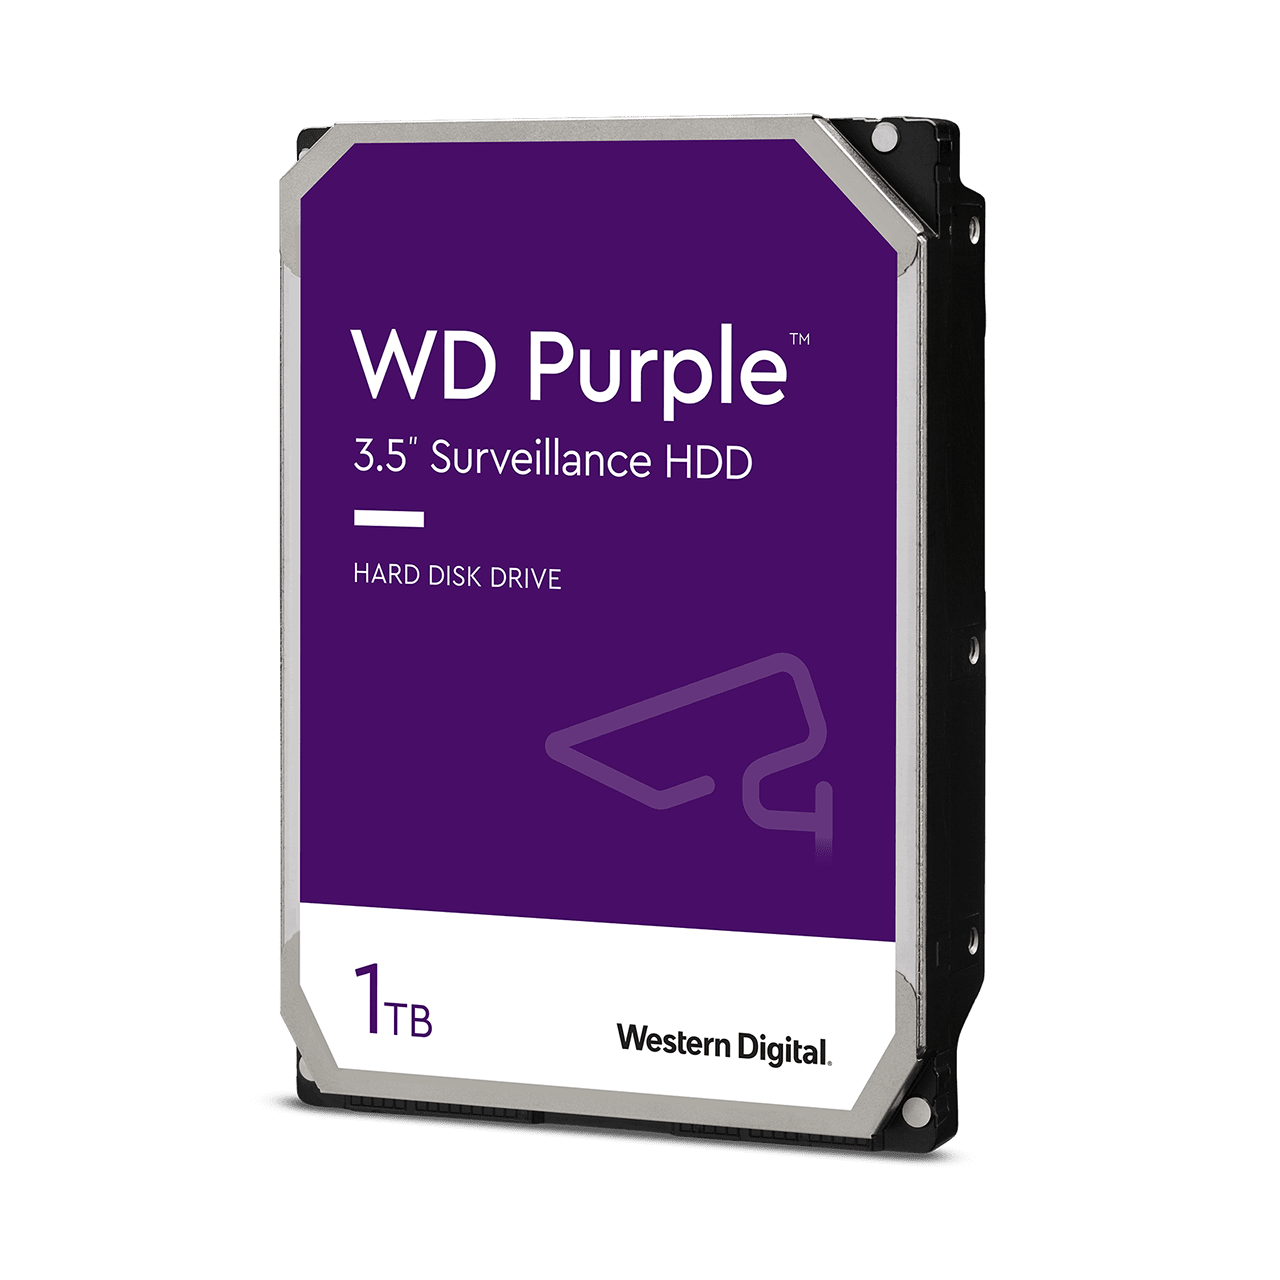 Compact Flash Hard Drive Replacement Wd Purple Surveillance Hard Drive